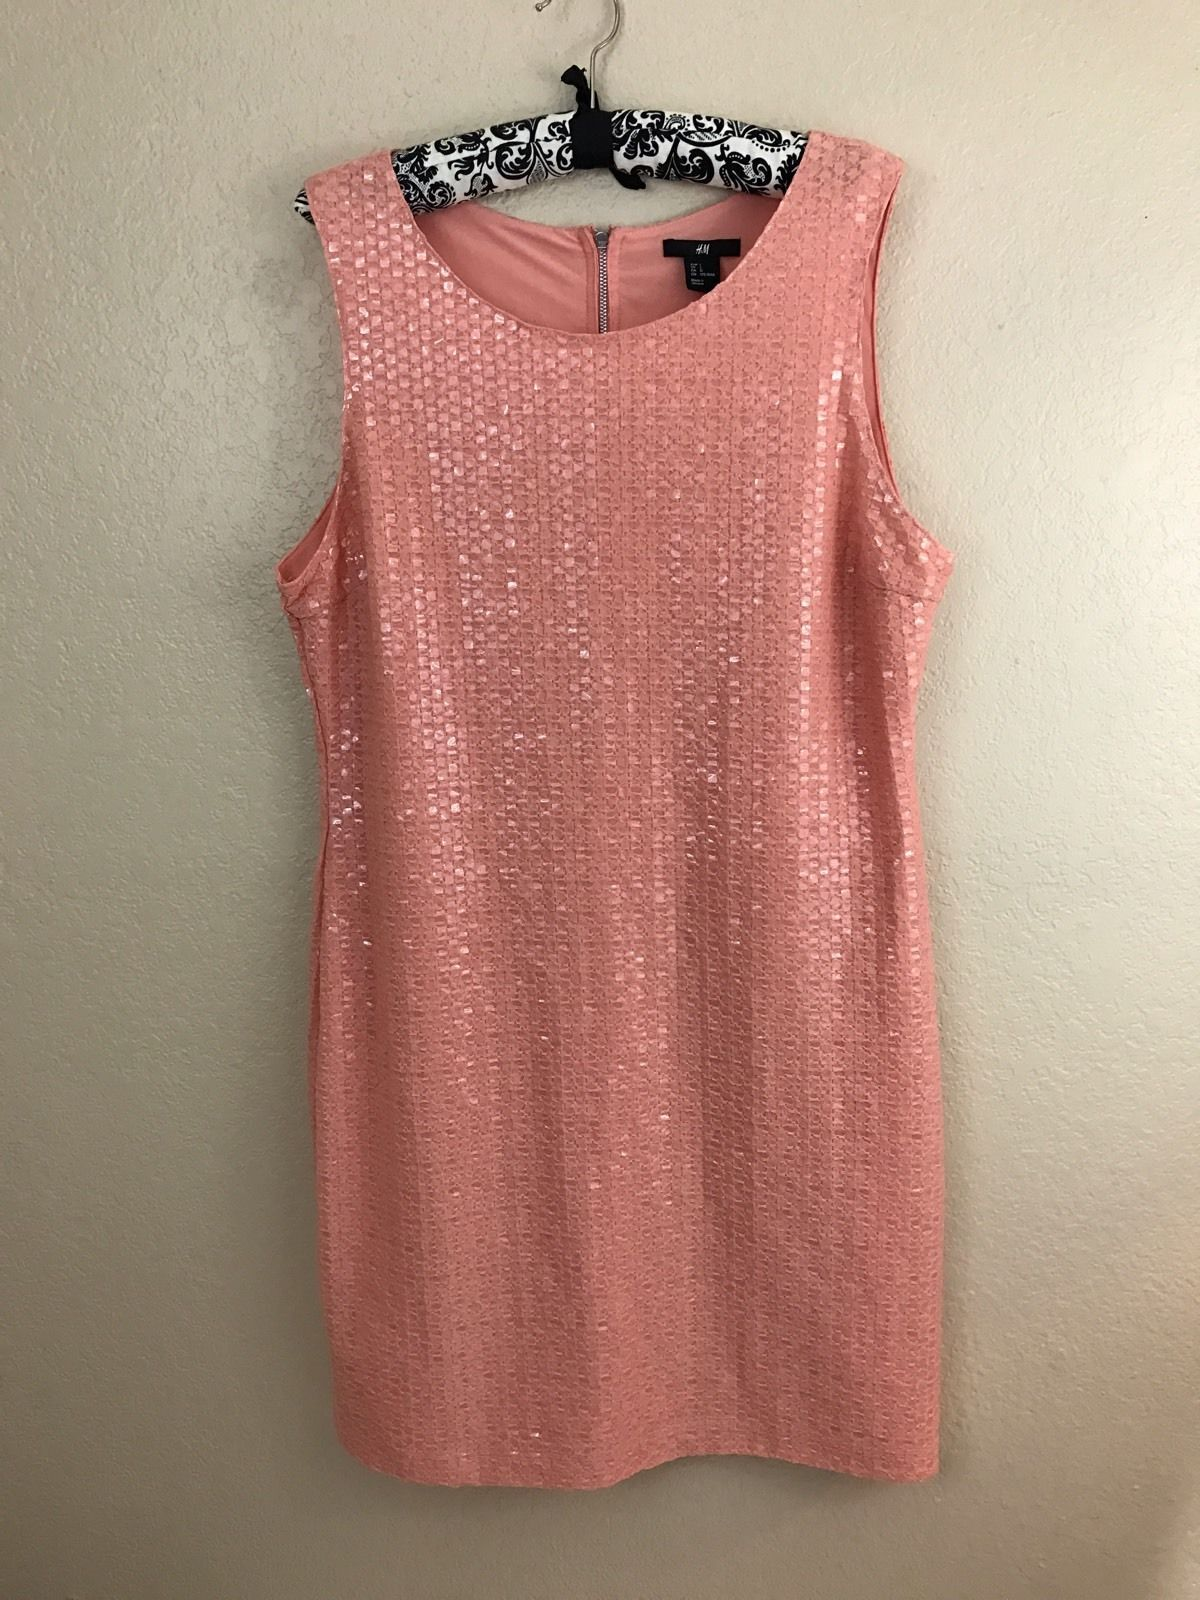 Cool awesome hum peach plastic sequin sheath cocktail dress size